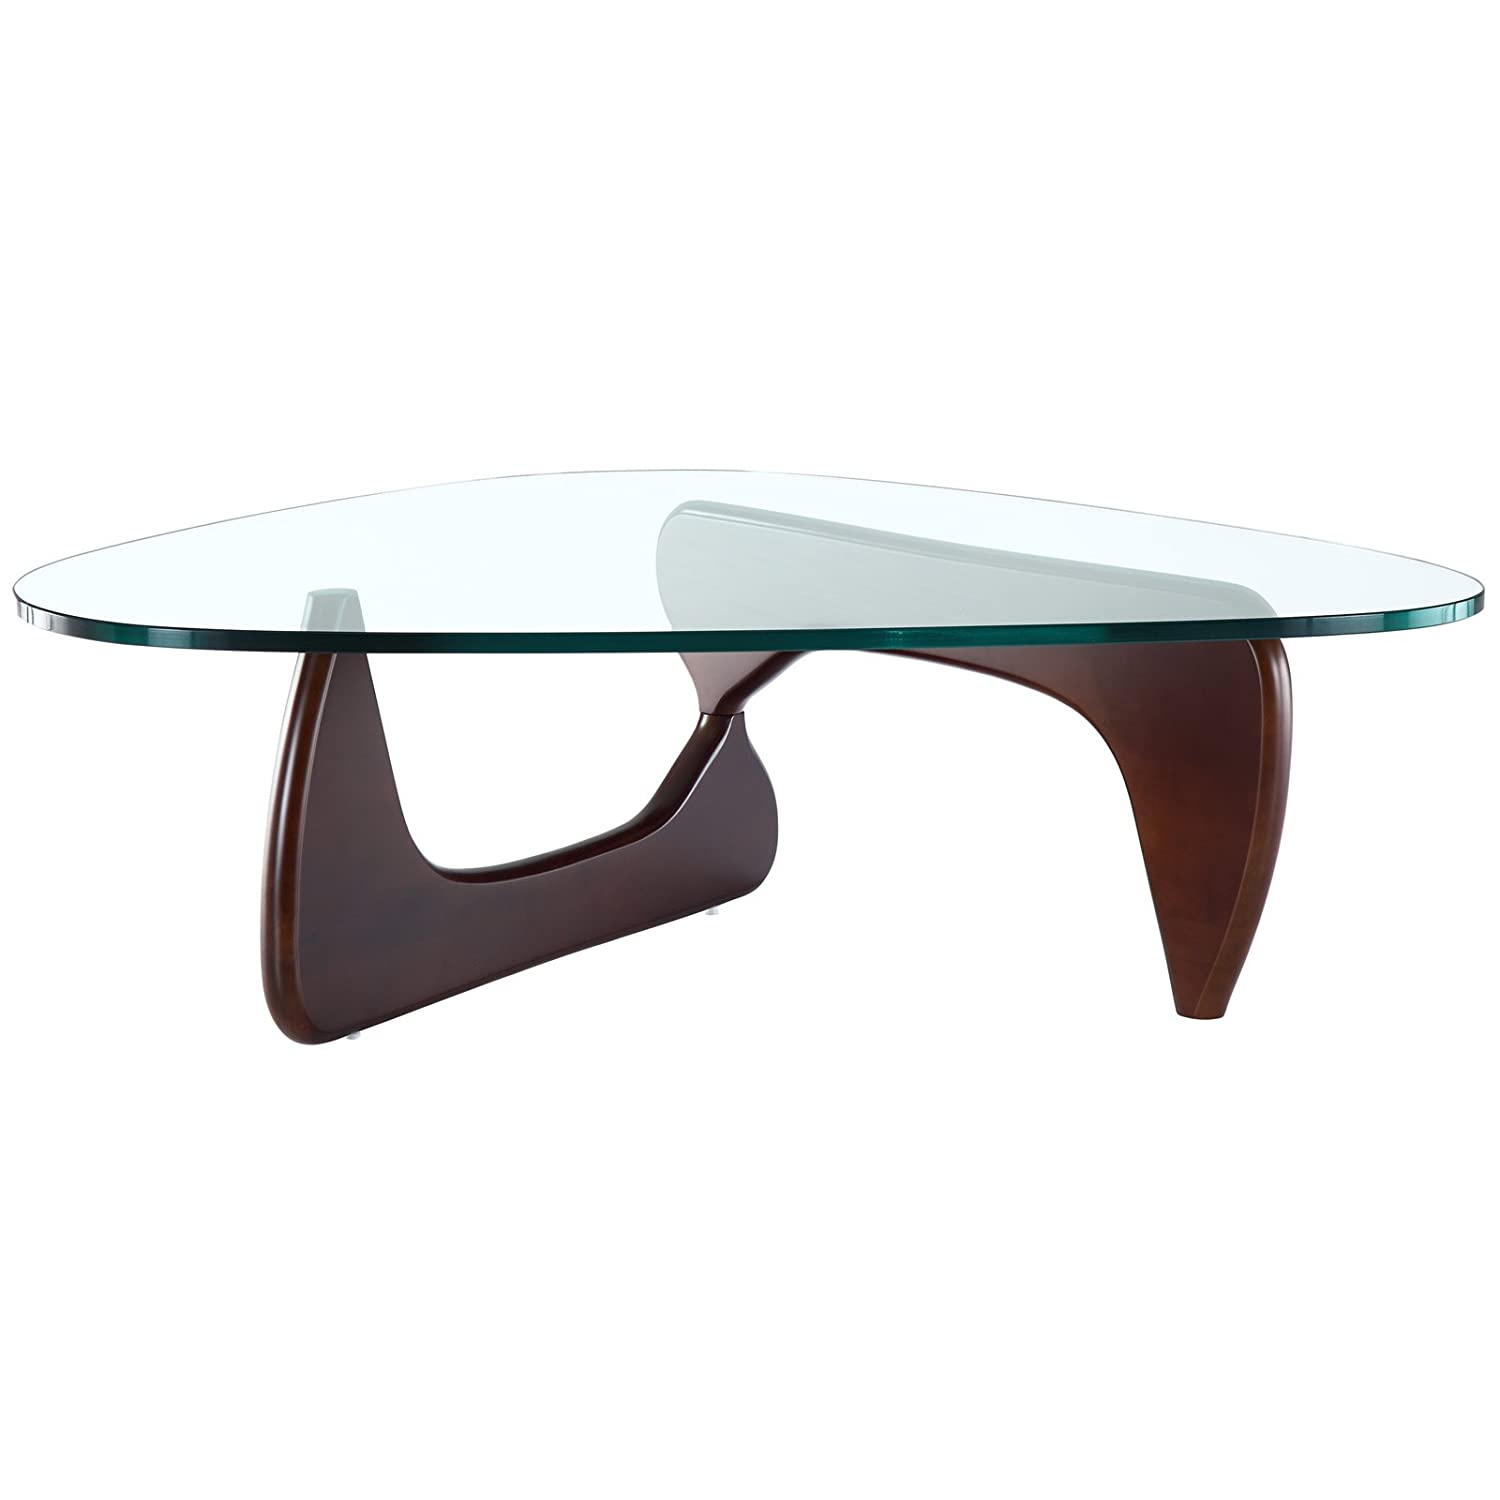 Beautiful Amazon.com: Modway Triangle Coffee Table In Dark Walnut: Kitchen U0026 Dining